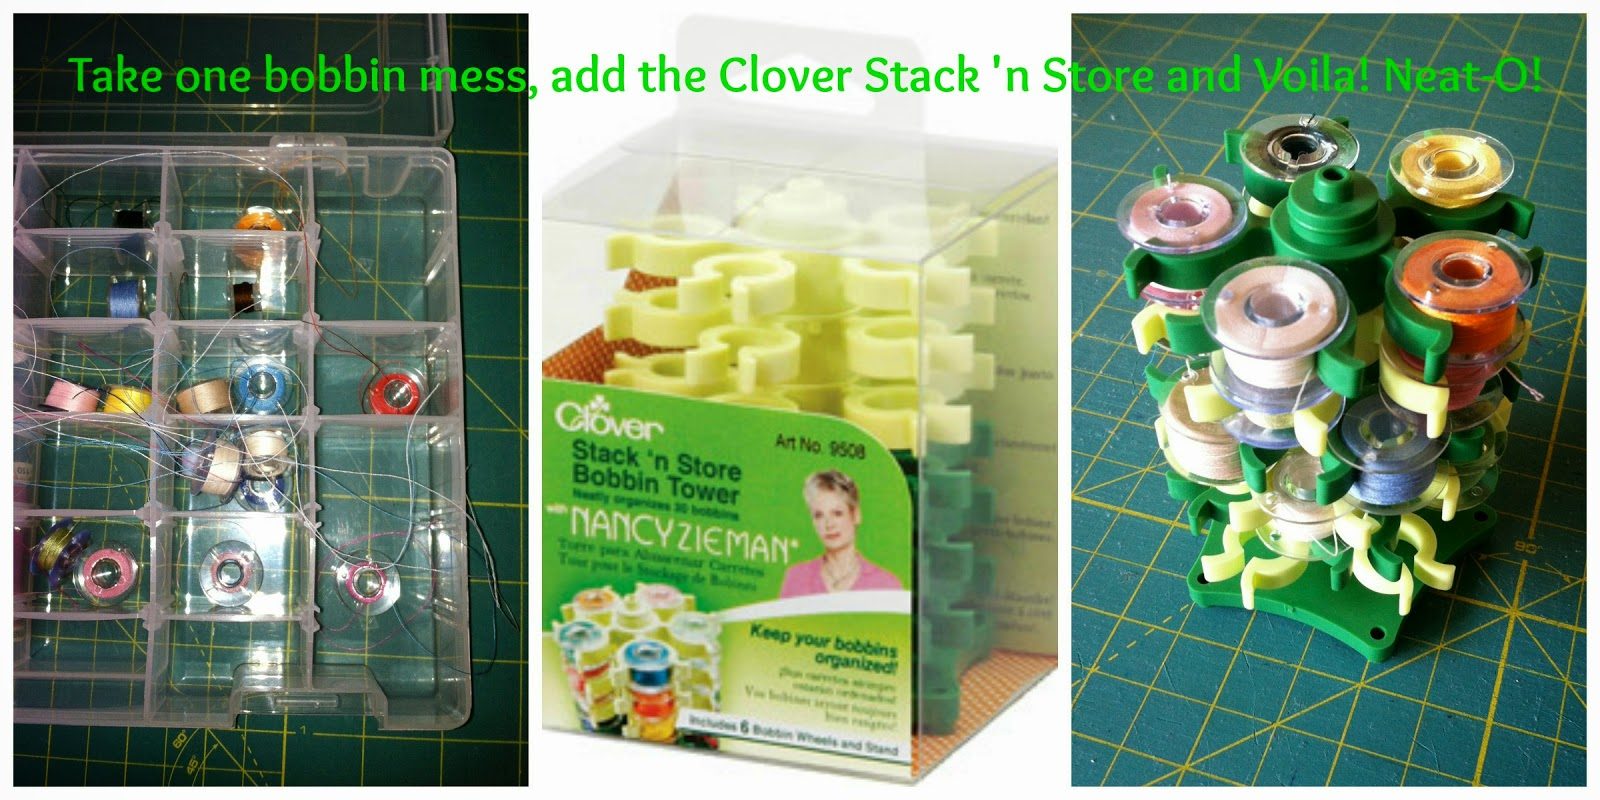 Stack and store bobbins